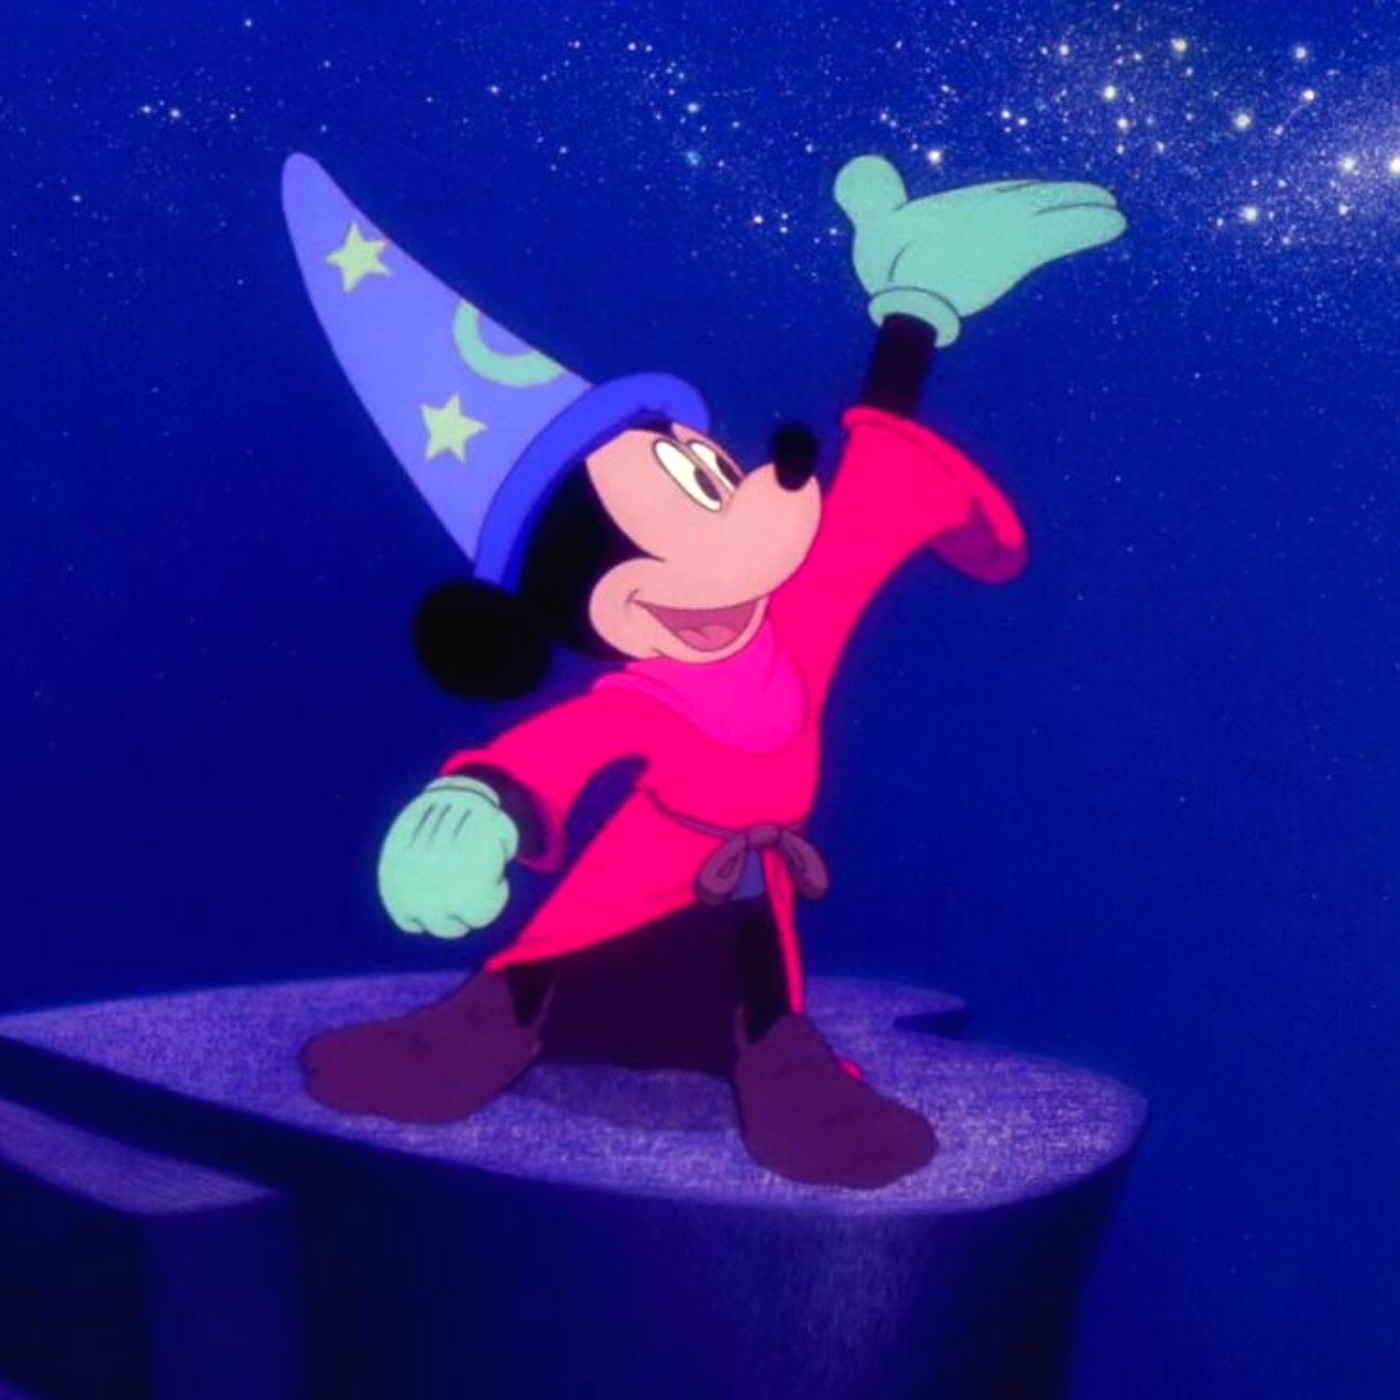 Mickey Mouse: The Sorcerer's Apprentice story